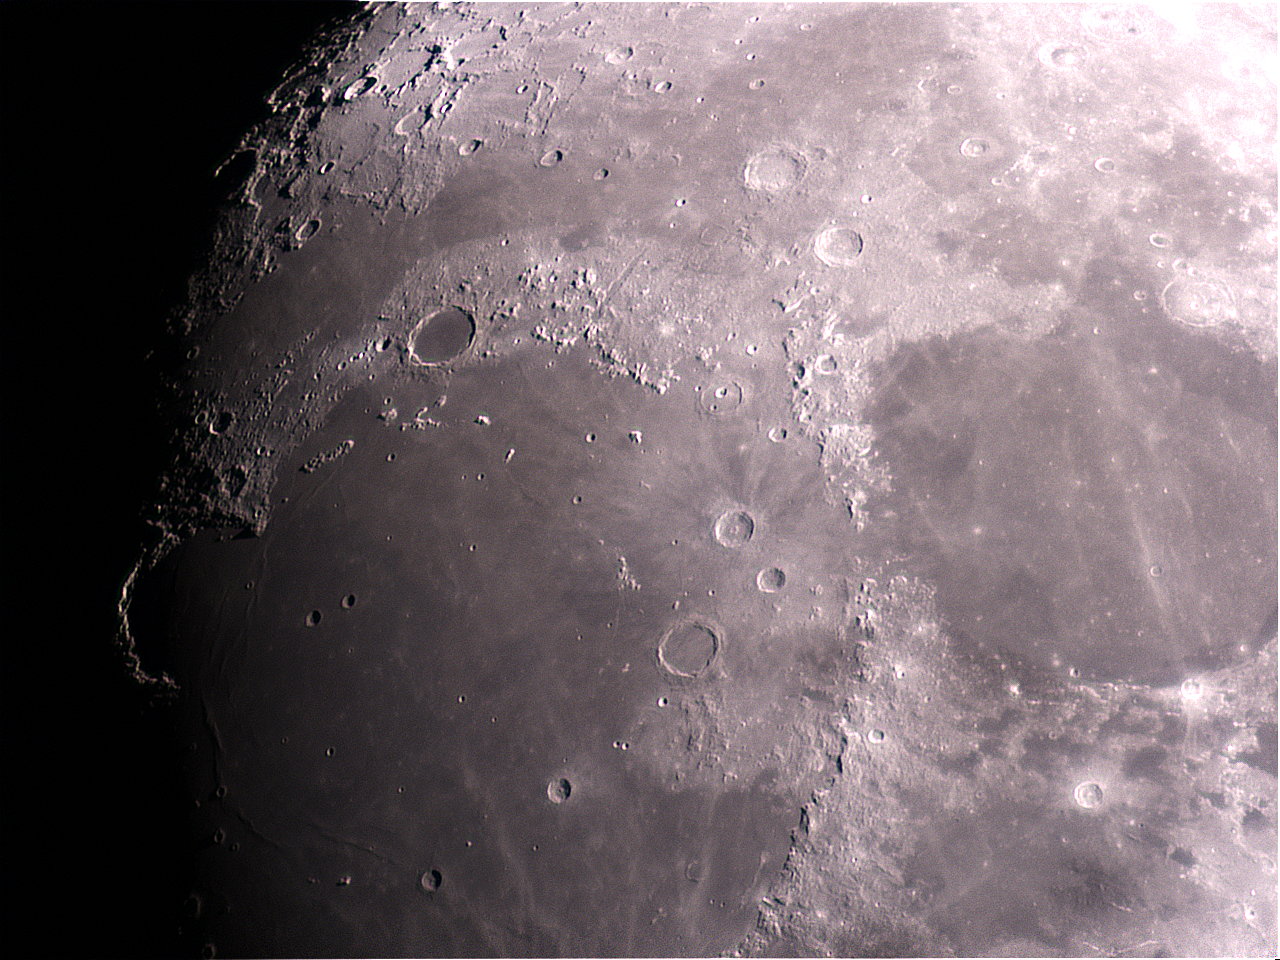 Moon_Mare_Imbrium_Area_25_02_18.png